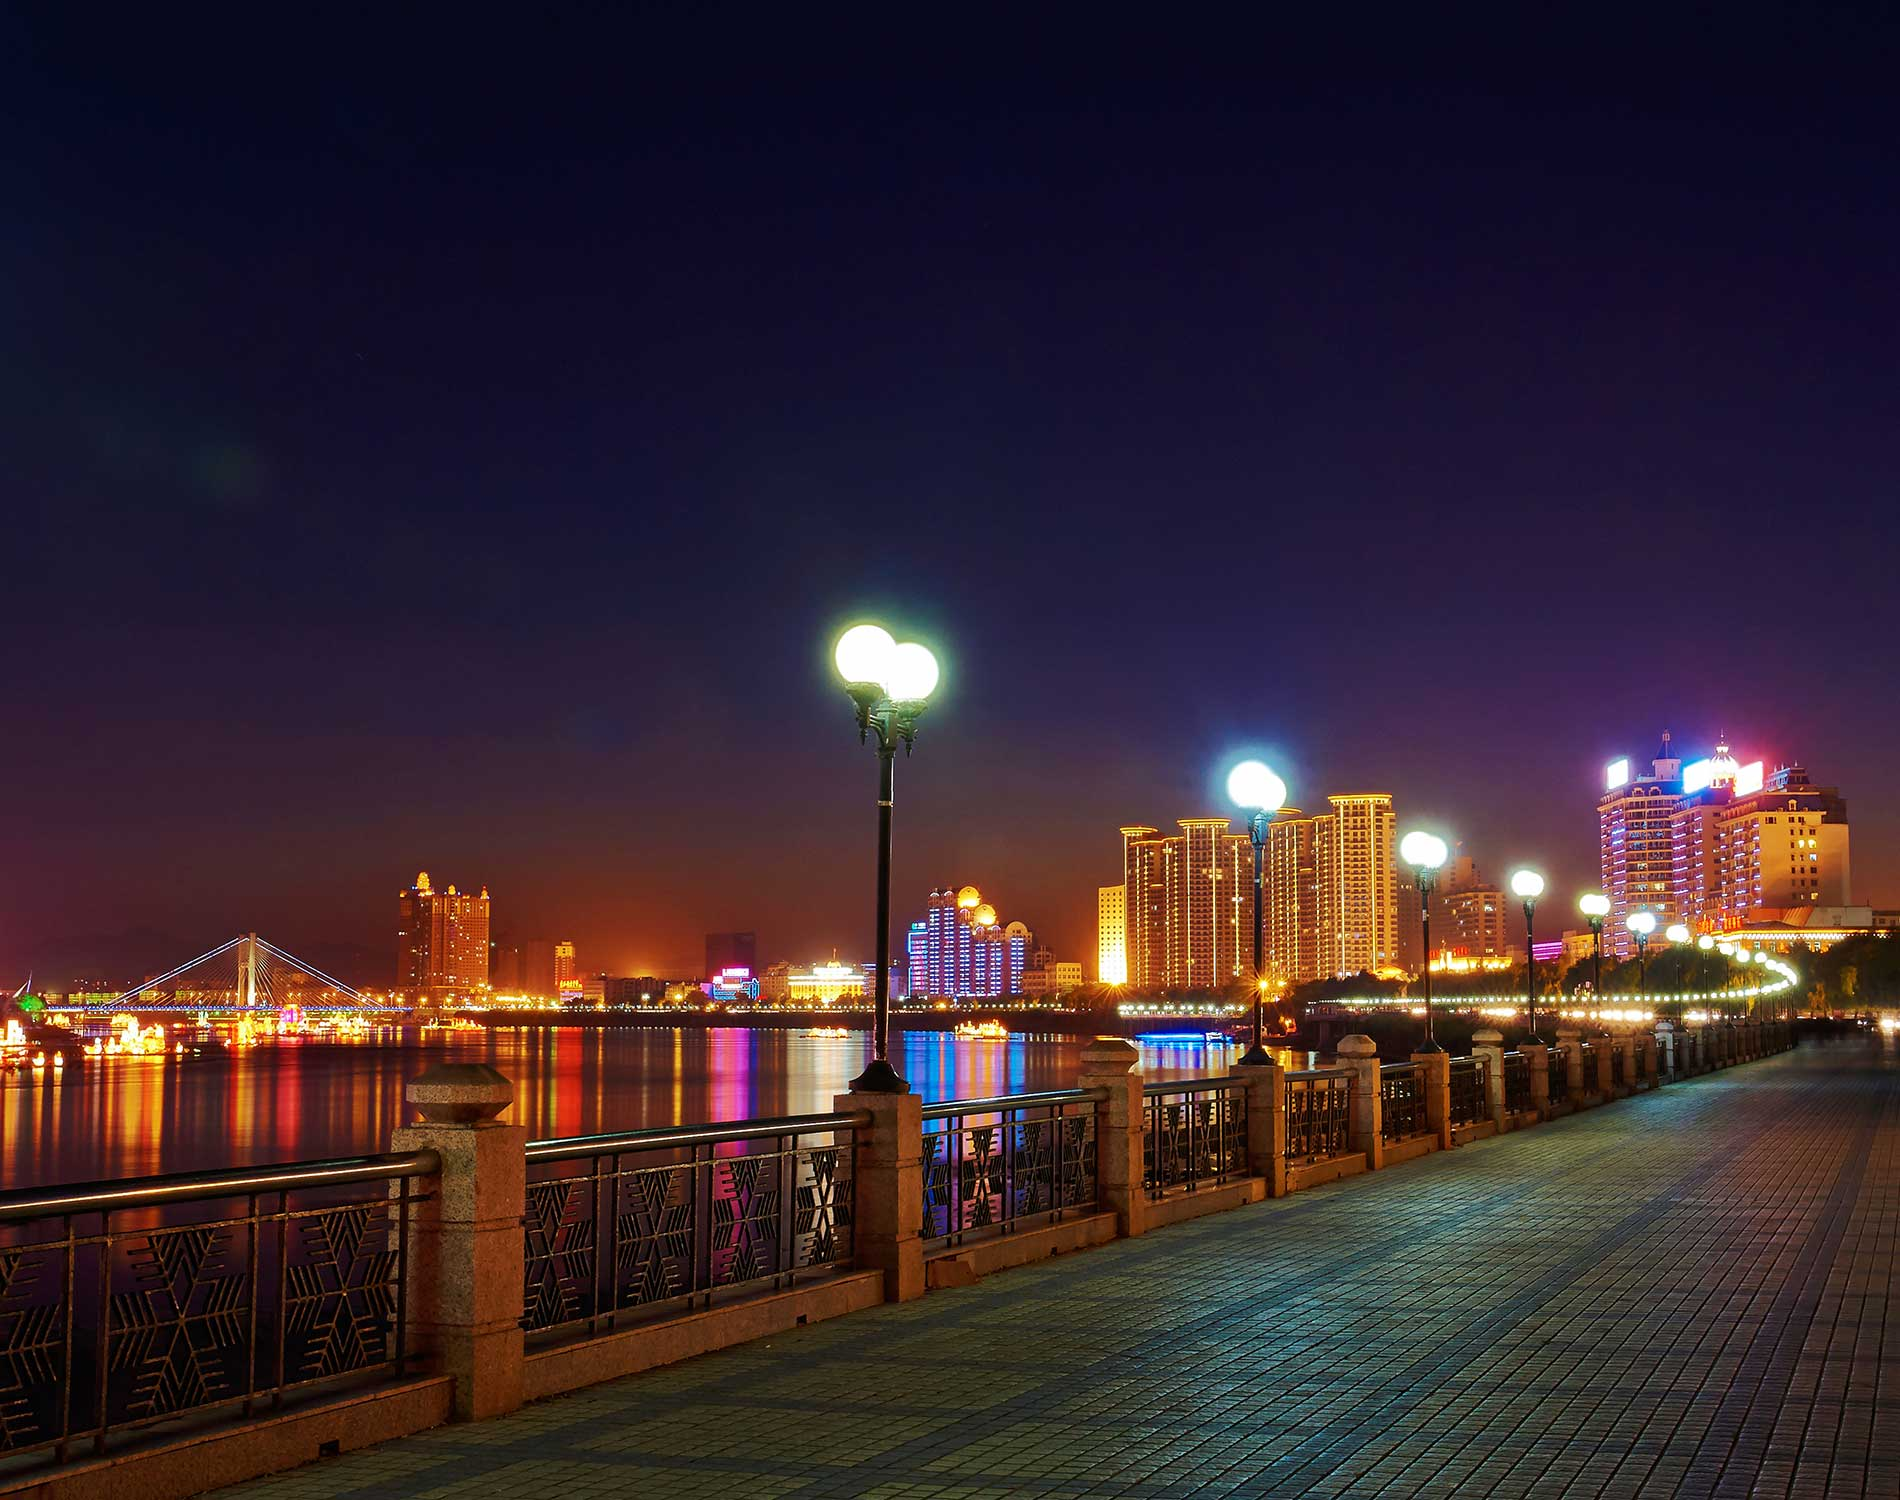 /~/media/Images/Website/Background%20Images/Offices/Jilin/Jilin_City_1900x1500px.ashx